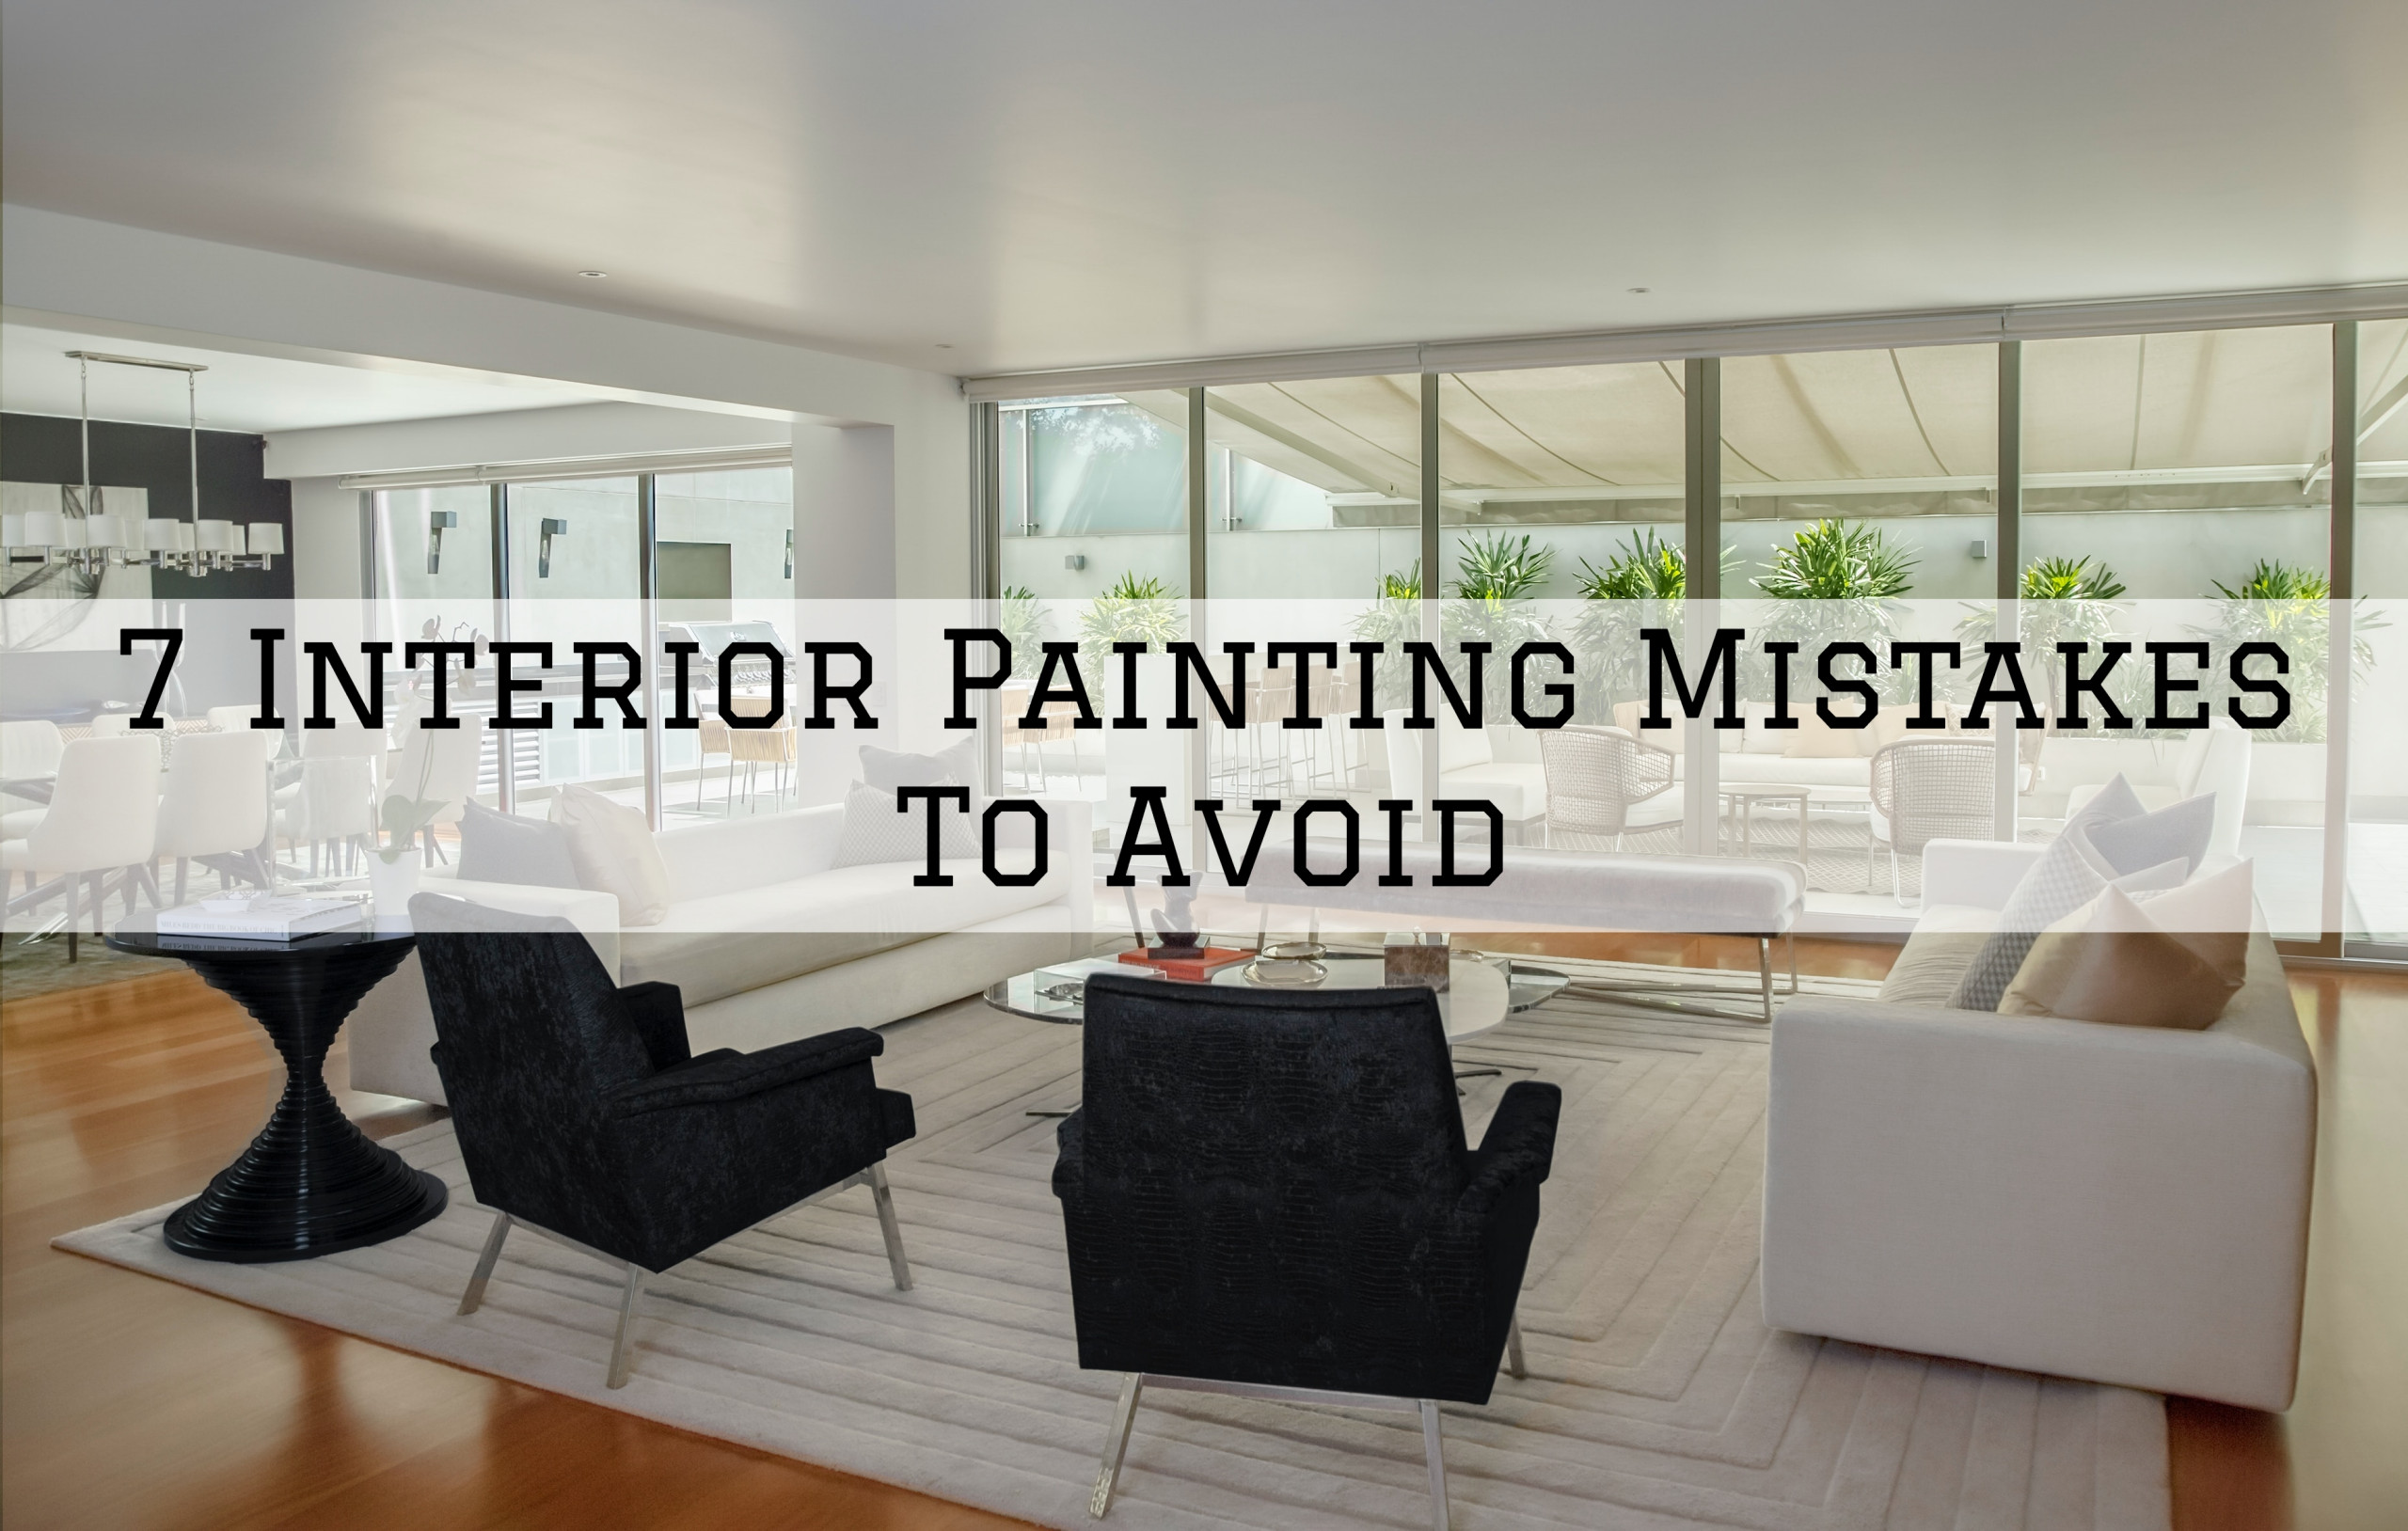 14-05-2021 Steves Quality Painting And Washing Princeton WI Interior Painting Mistakes To Avoid